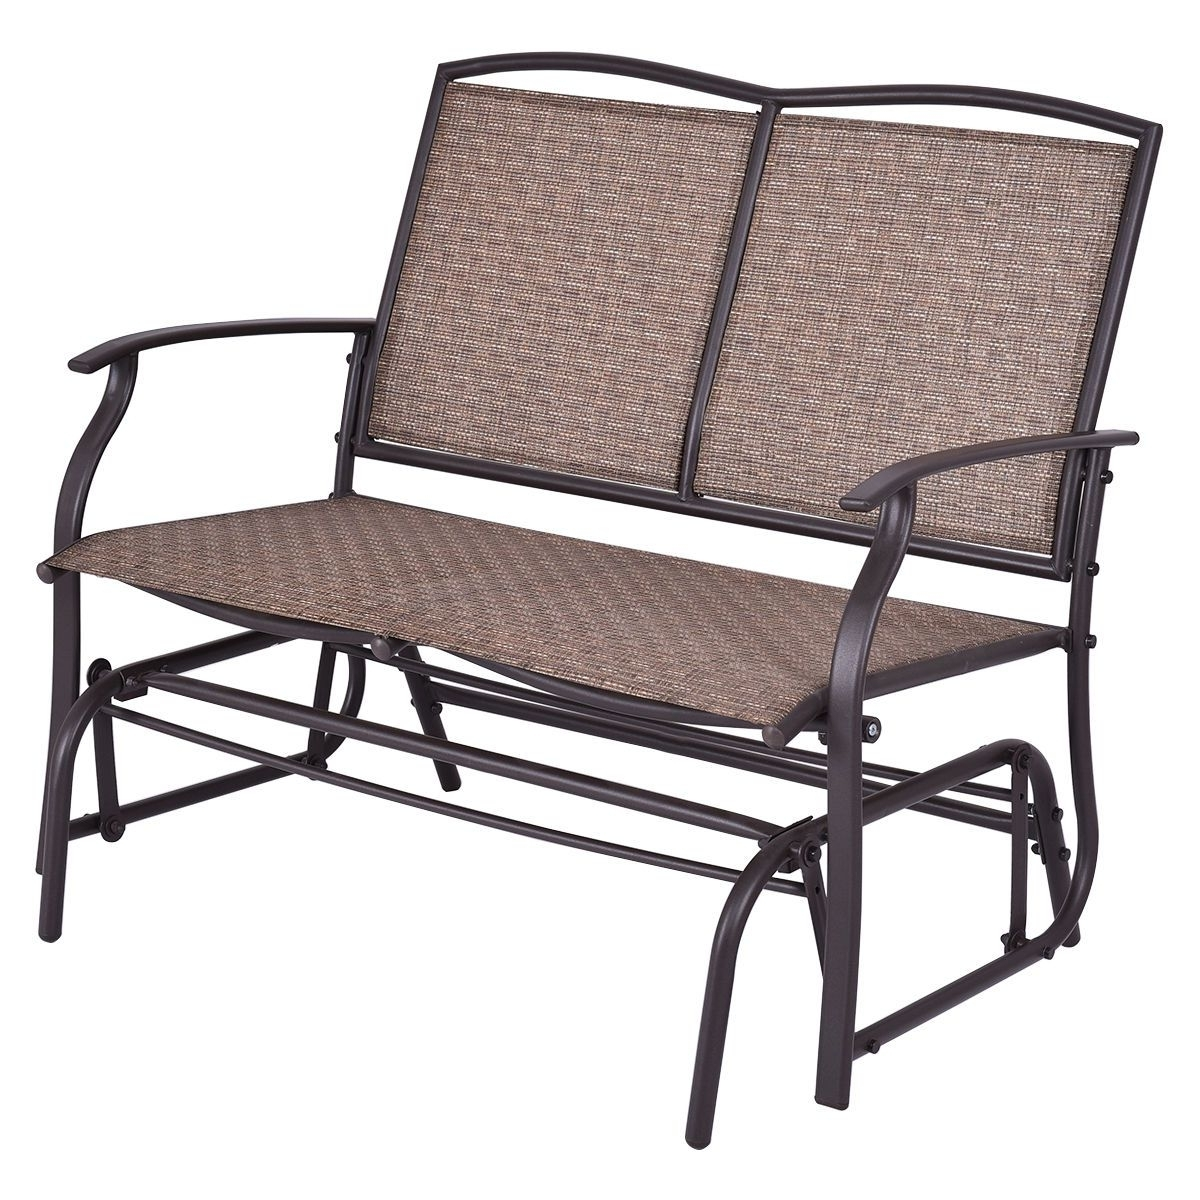 Patio Glider, Gliders Regarding 2019 Rona Patio Rocking Chairs (View 9 of 20)